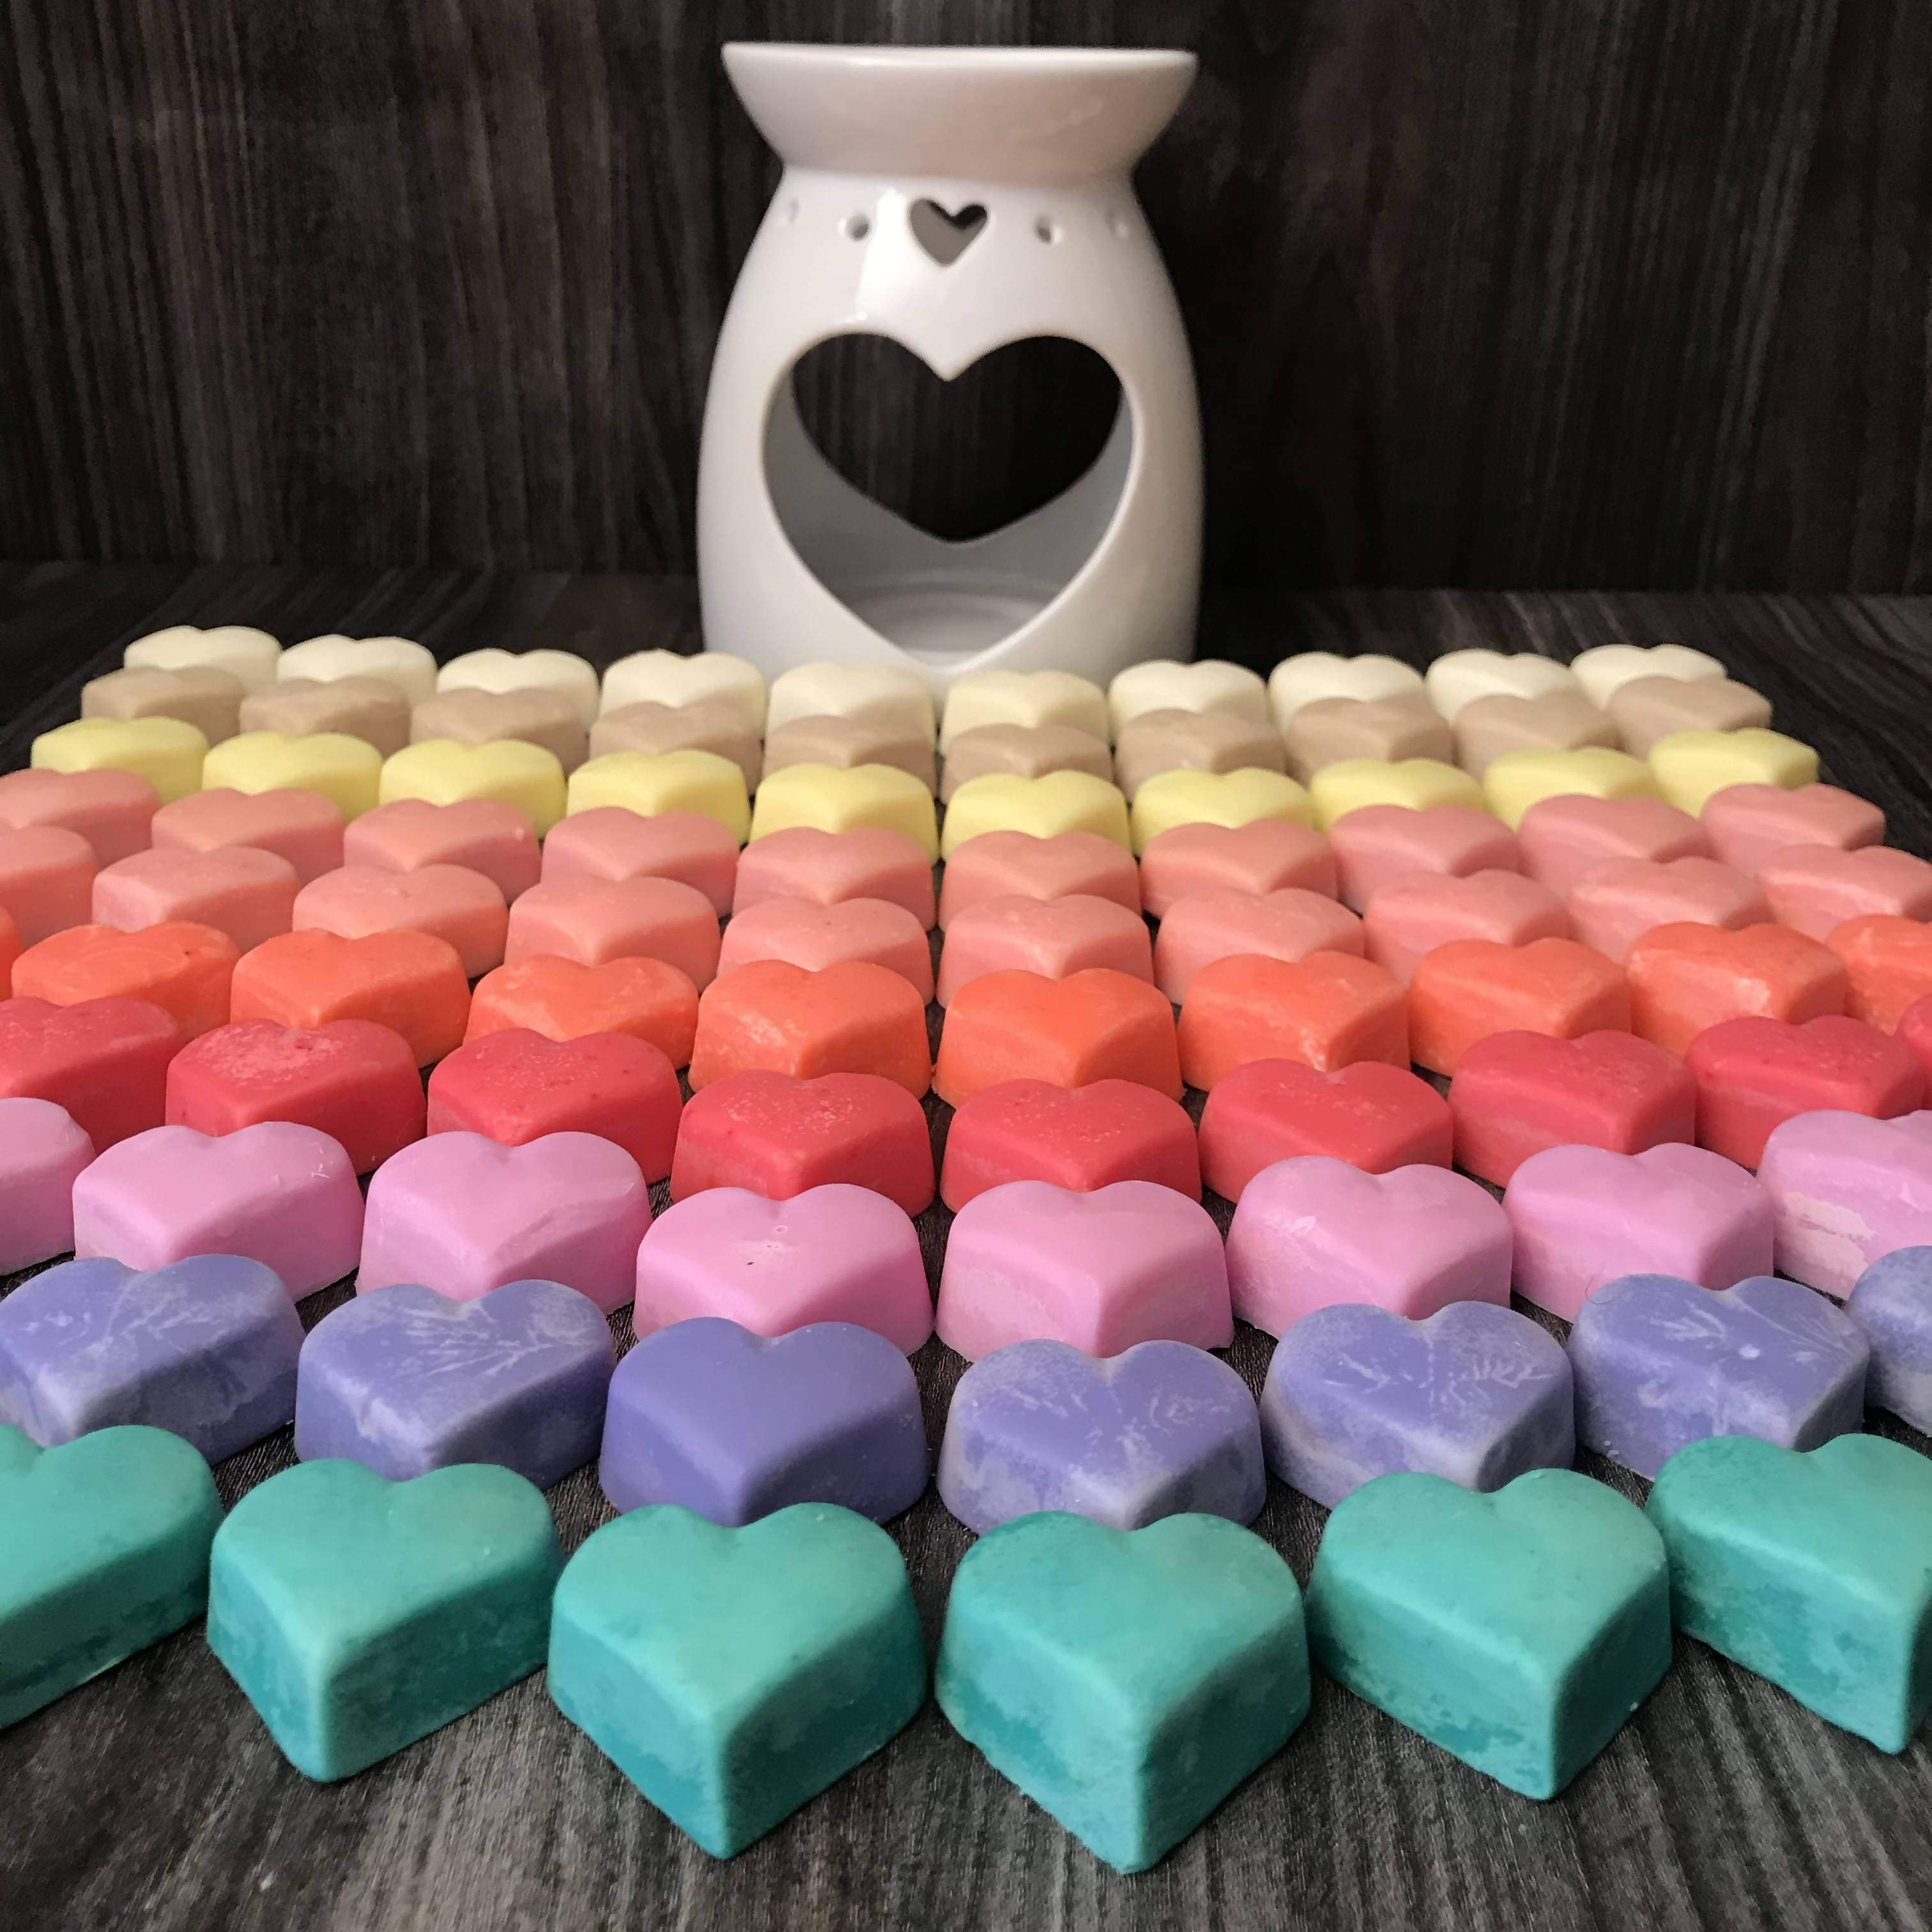 x10 Hand Poured Soy Wax Melts, with the burner included...